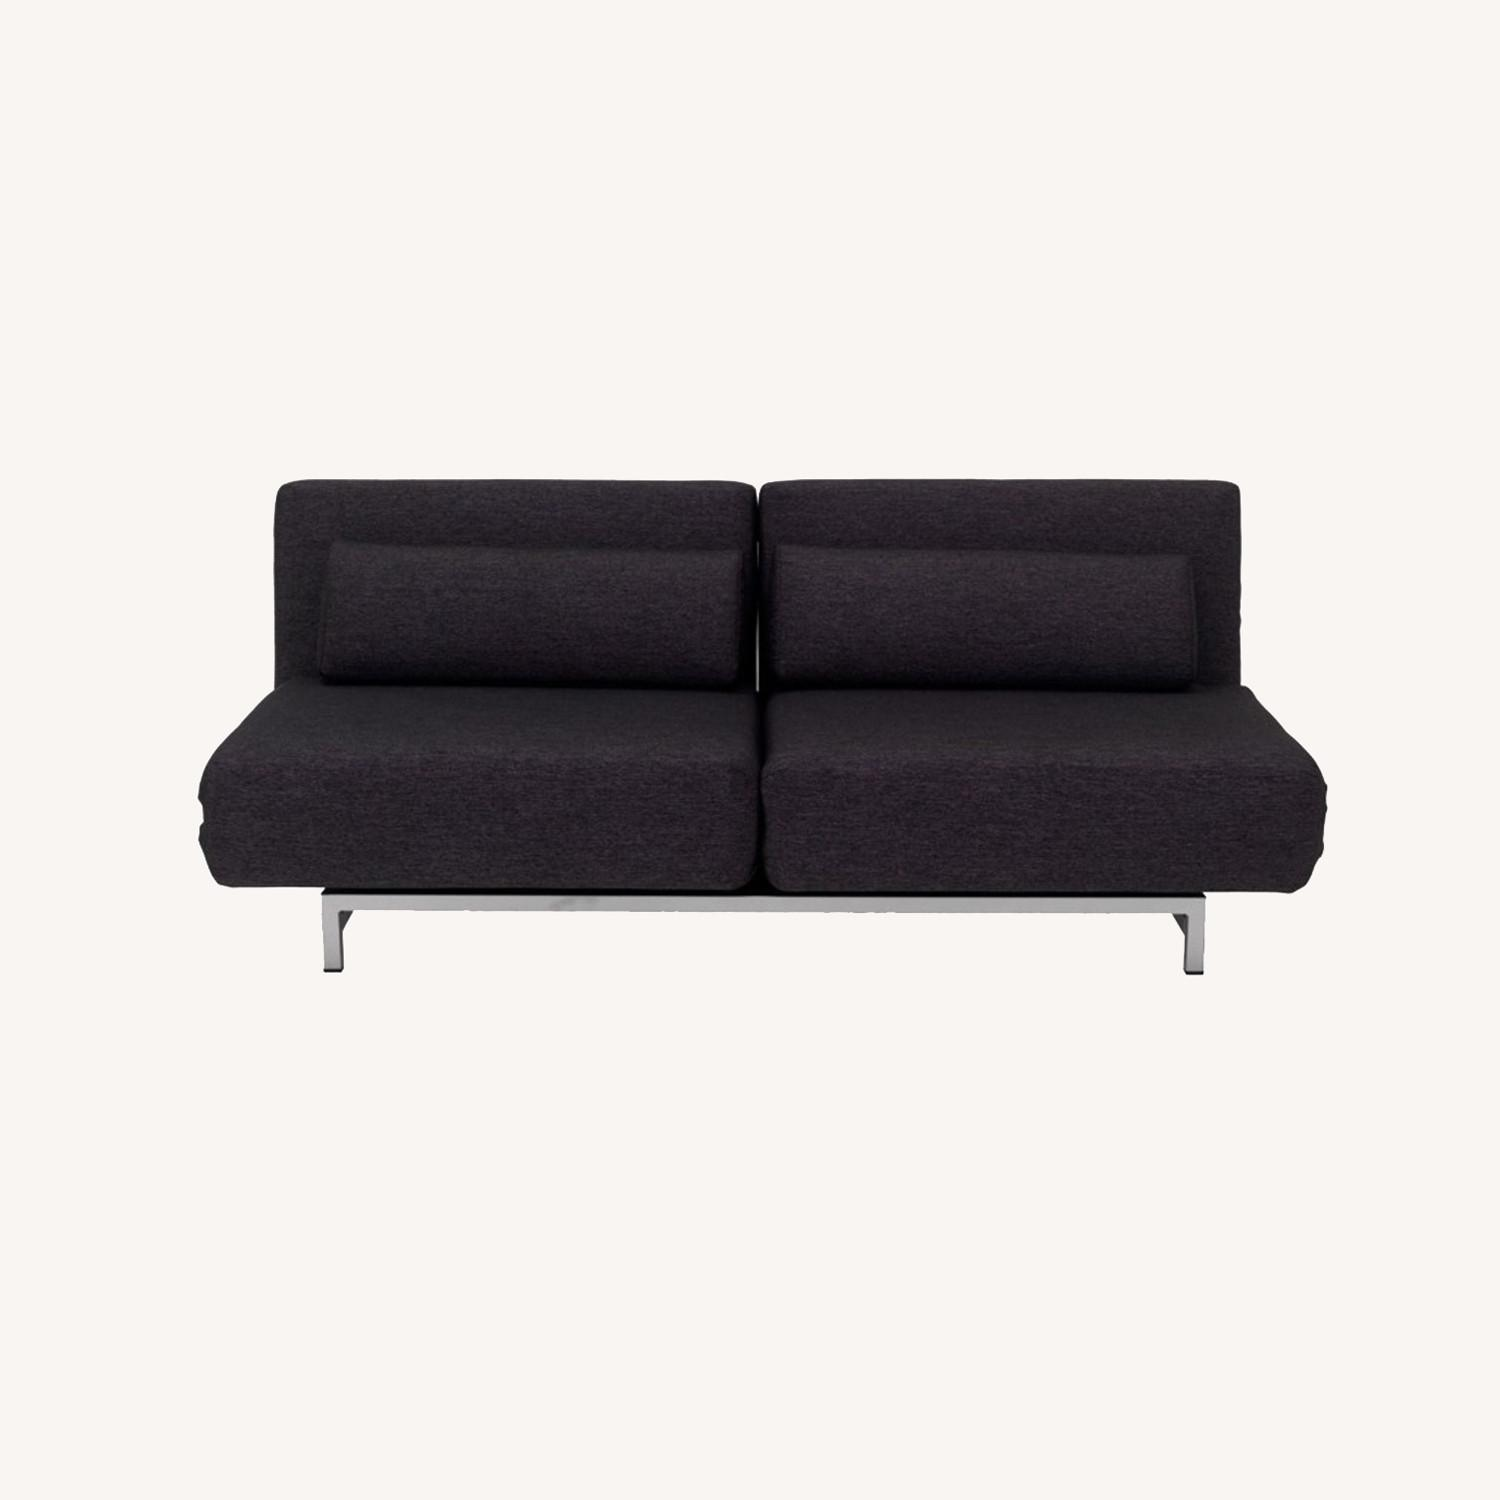 Sofa Bed In Black Fabric W/ Adjustable Back - image-8